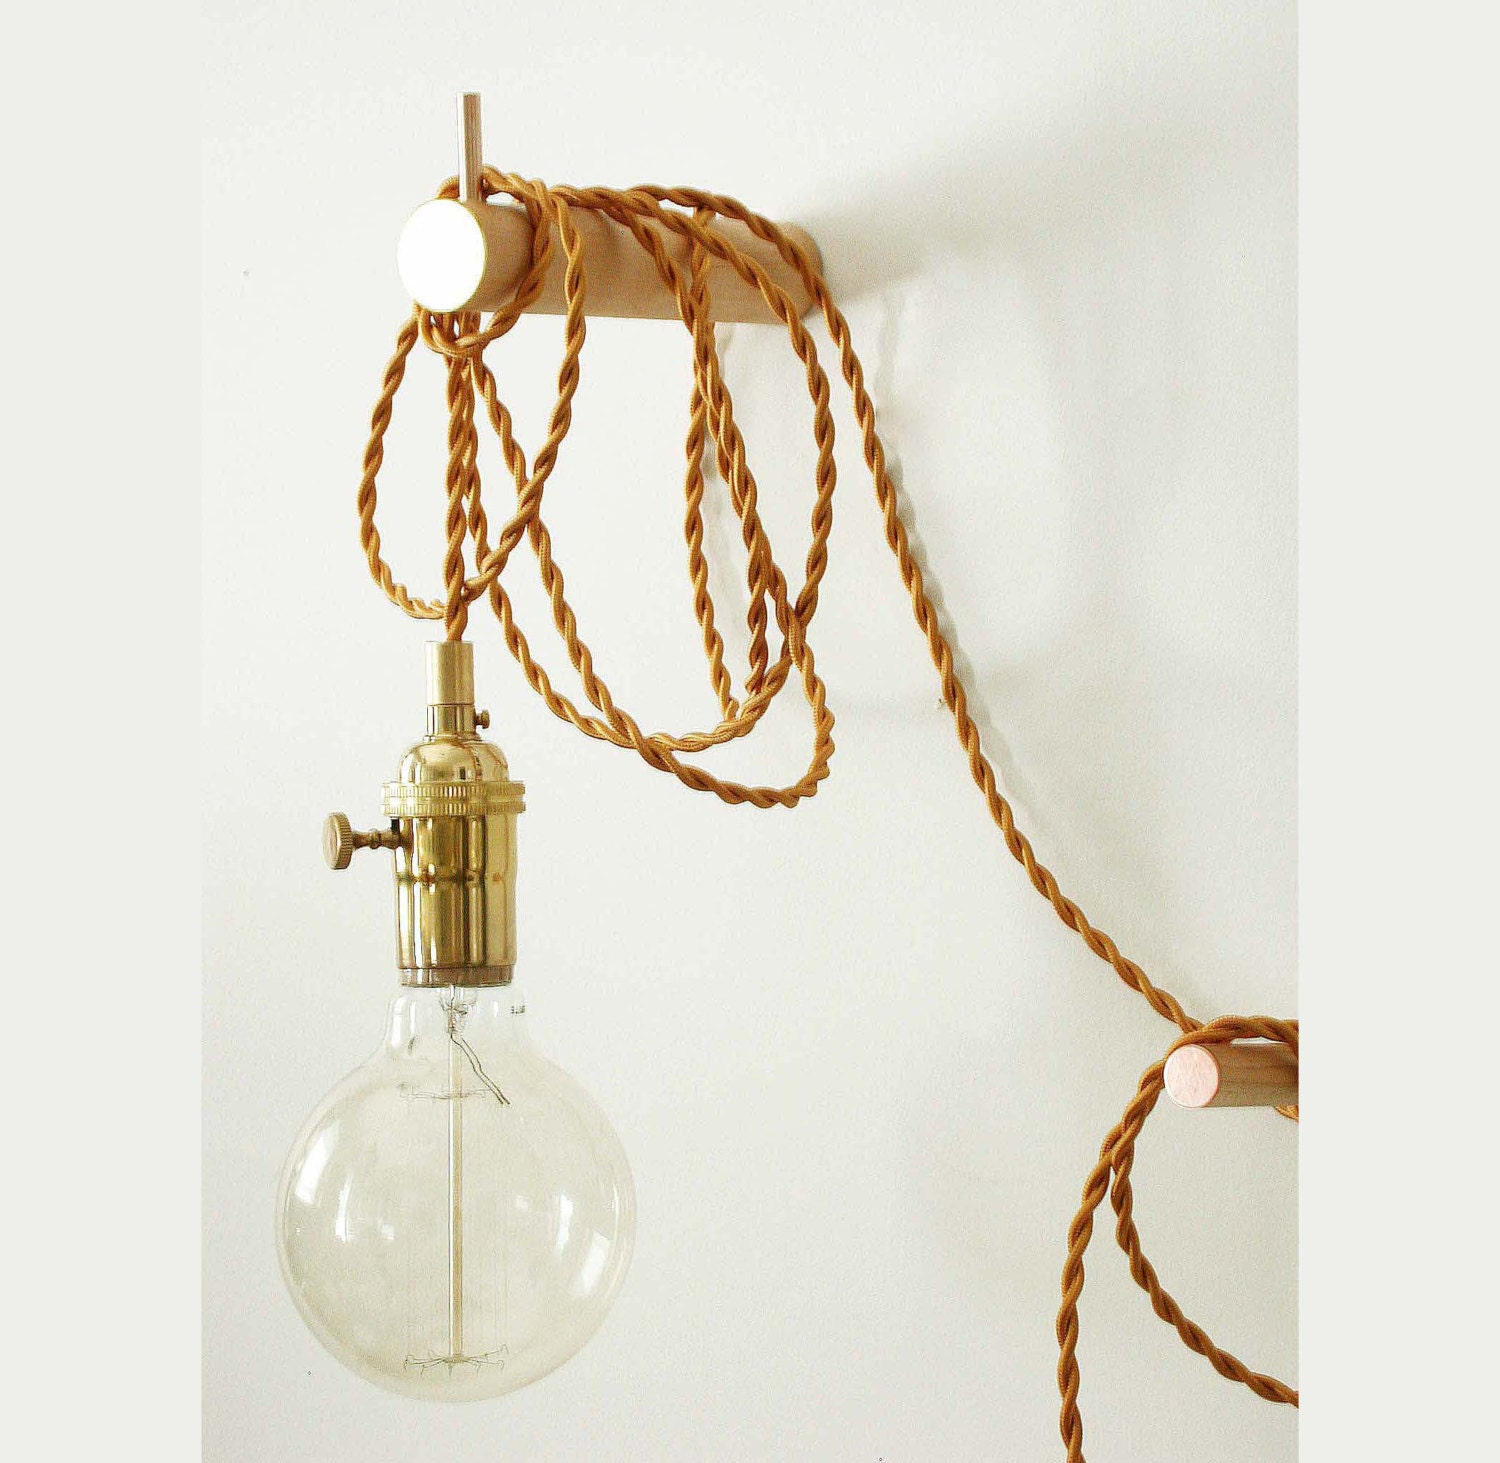 Wall Hanging Lights: Pendant Light Brass Wall Lighting Edison Bulb Adjustable